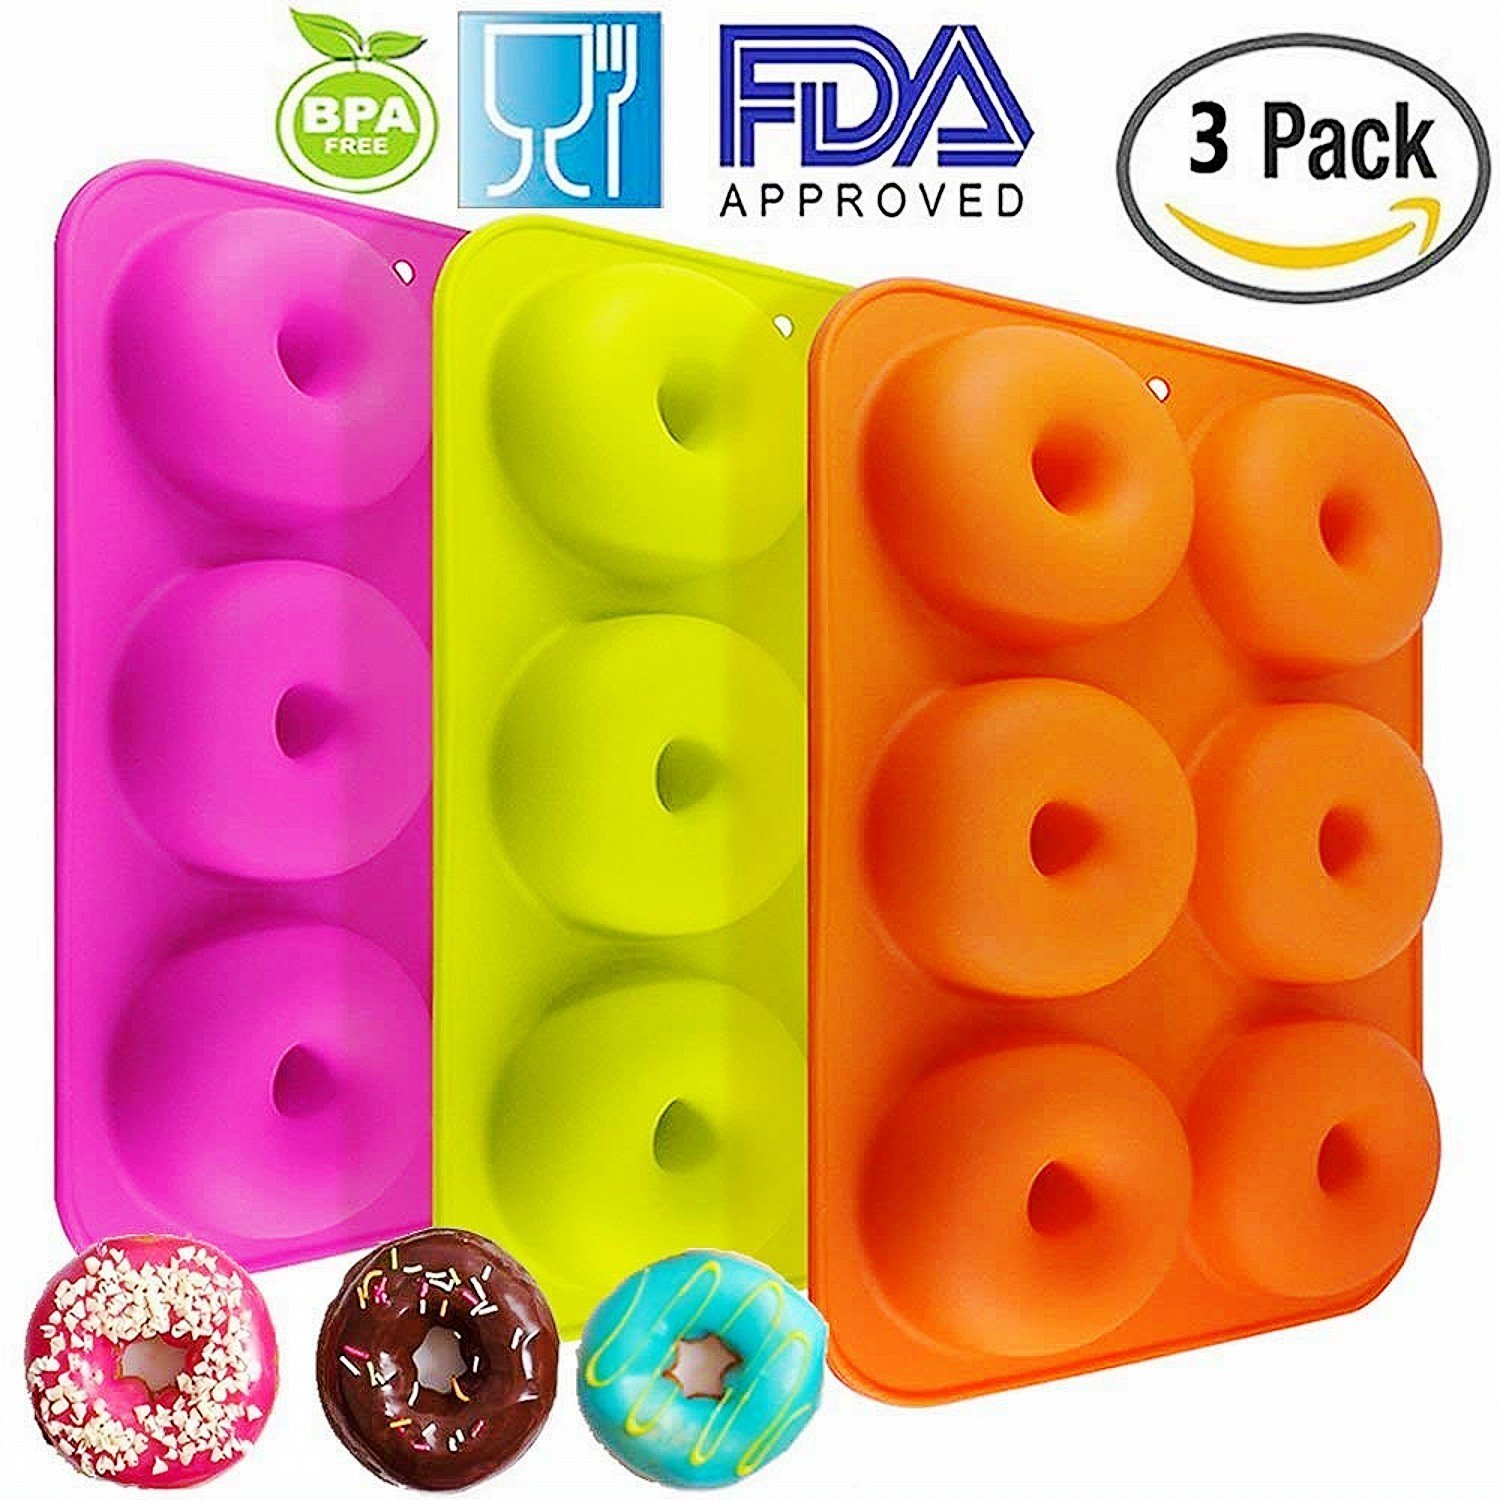 OKSANO 3 Pack Donut Molds, Silicon Cake Mold 6 Cavity Non-Stick Safe Baking Tray Maker Pan Heat Resistance for Cake Biscuit Bagels Muffins-Orange, Rose Red, Green by OKSANO (Image #1)